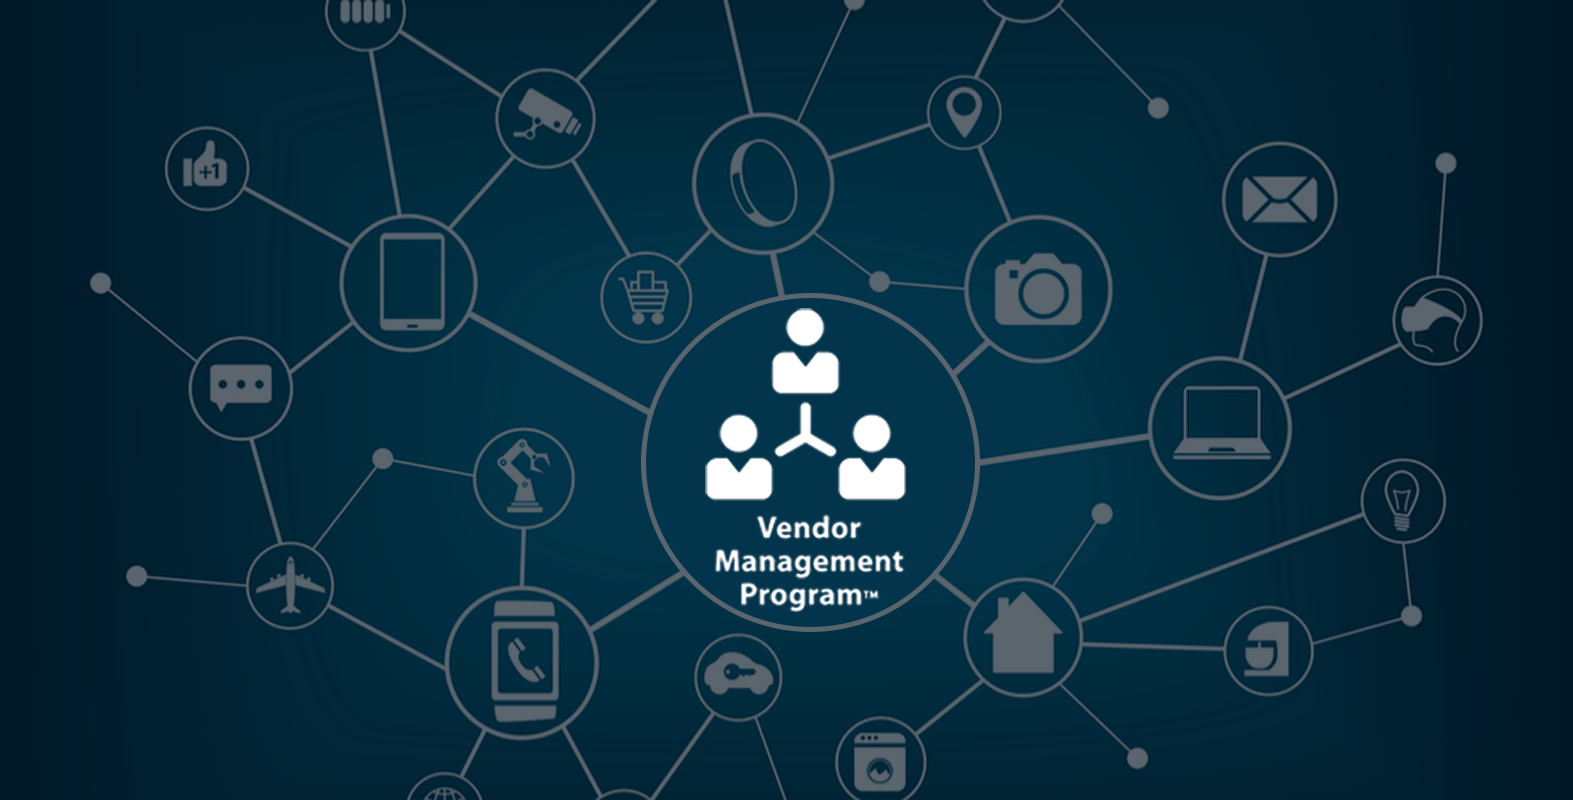 Command expands its Vendor Management Program to meet growing national customer demand